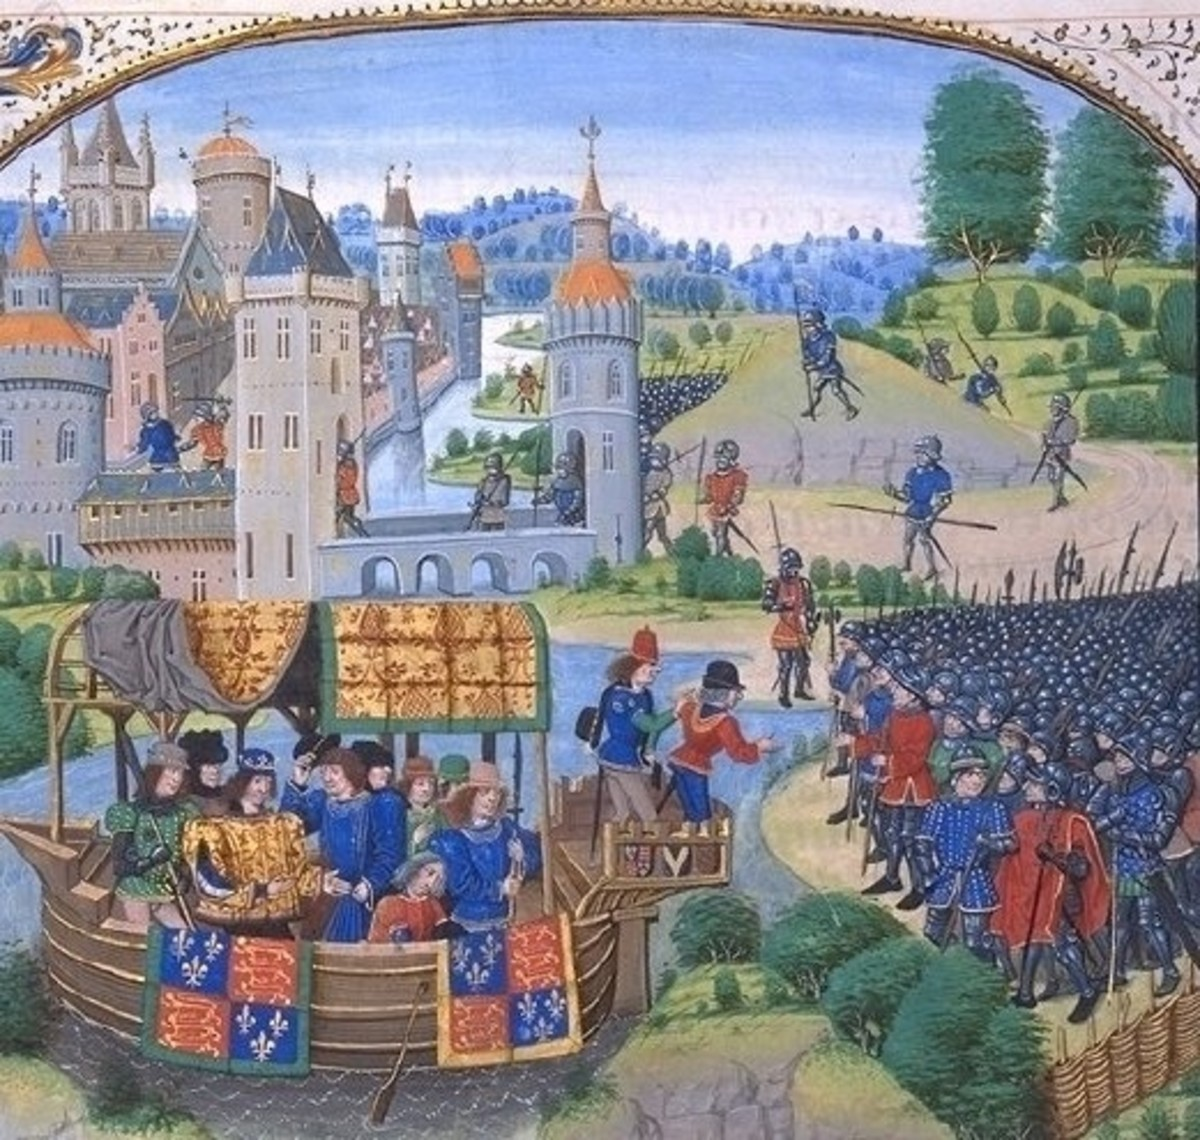 The picture above shows King Richard II meeting the rebels during the Peasants' Revolt.